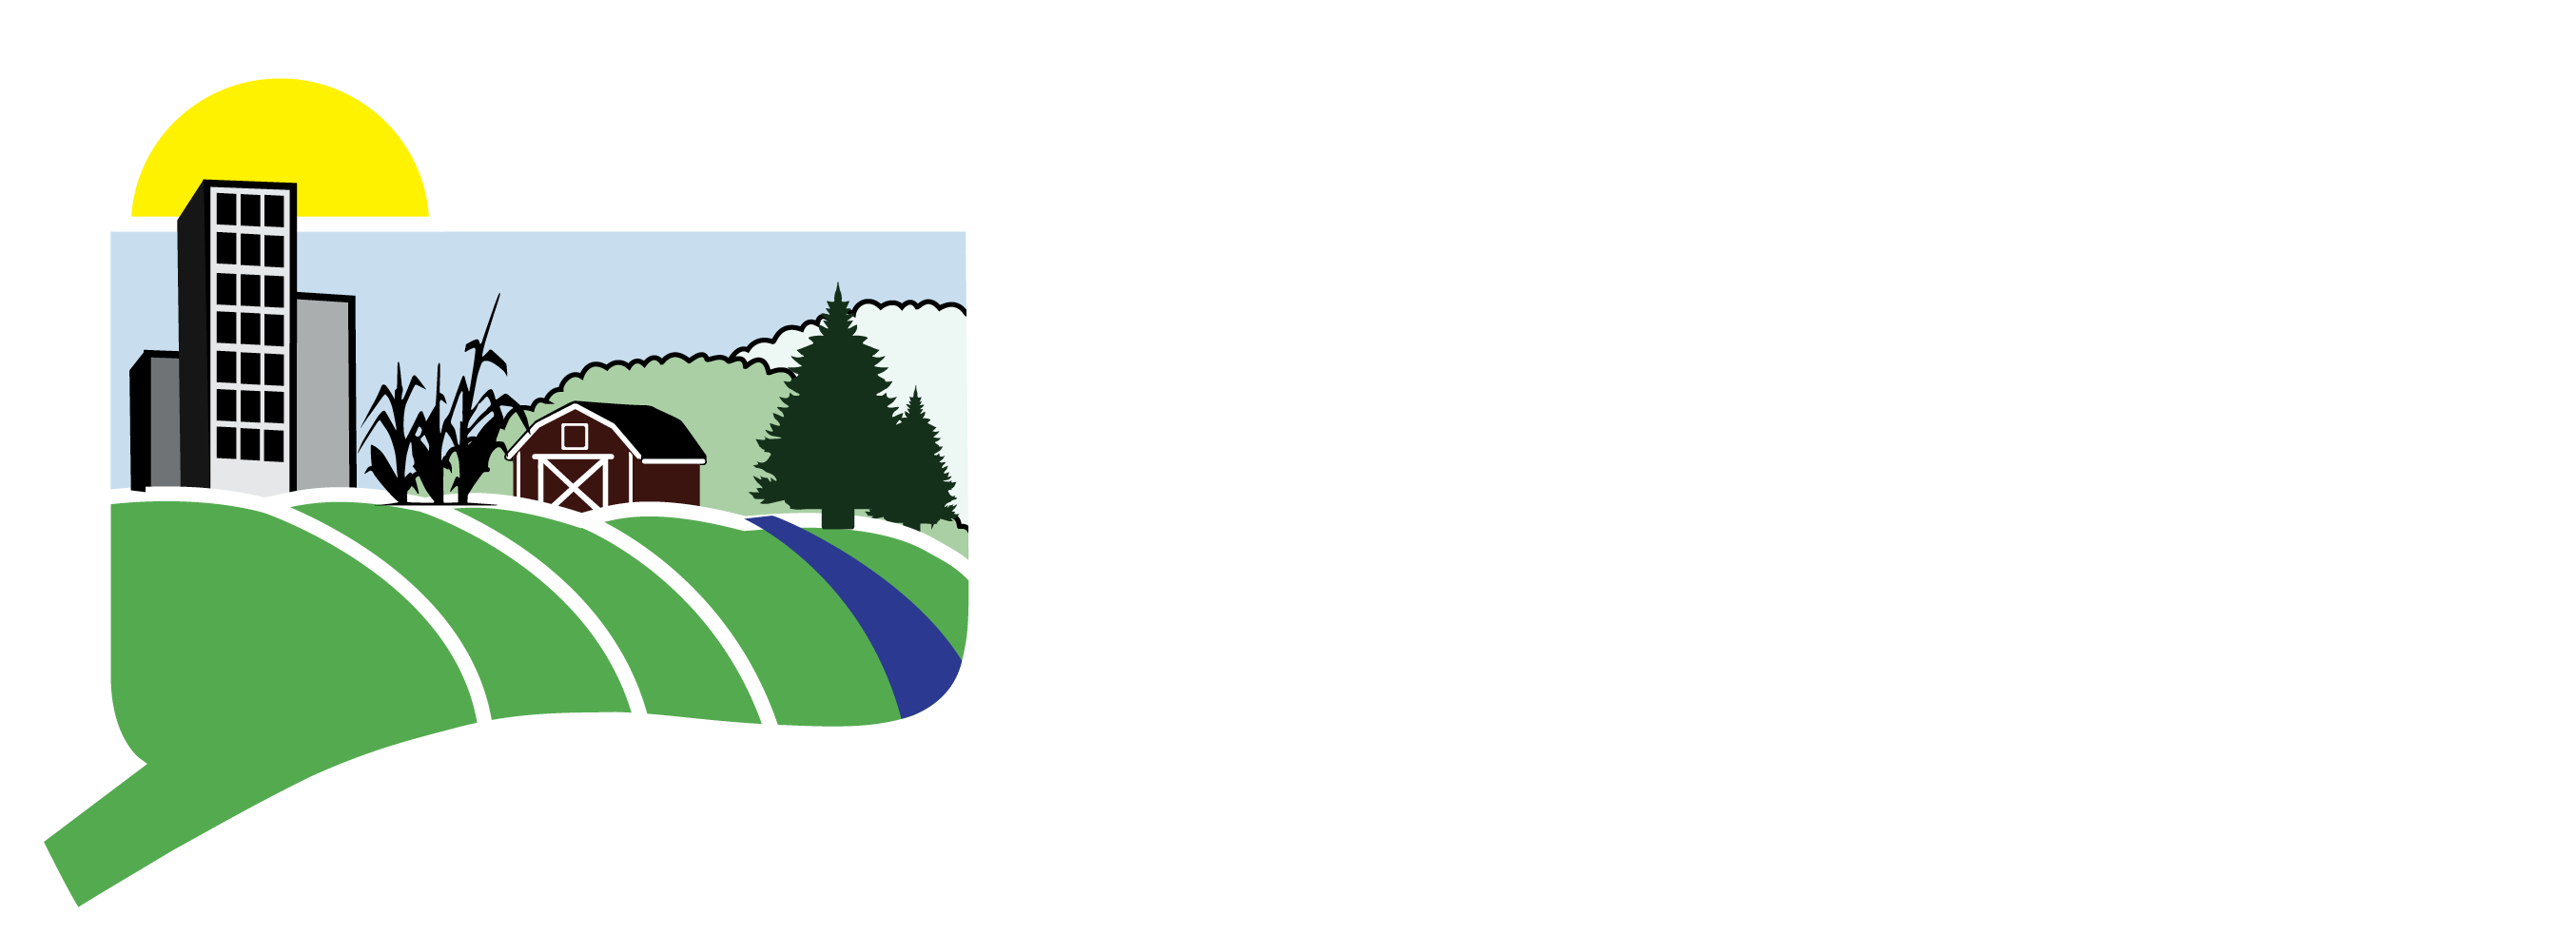 Connecticut Resource Conservation and Development